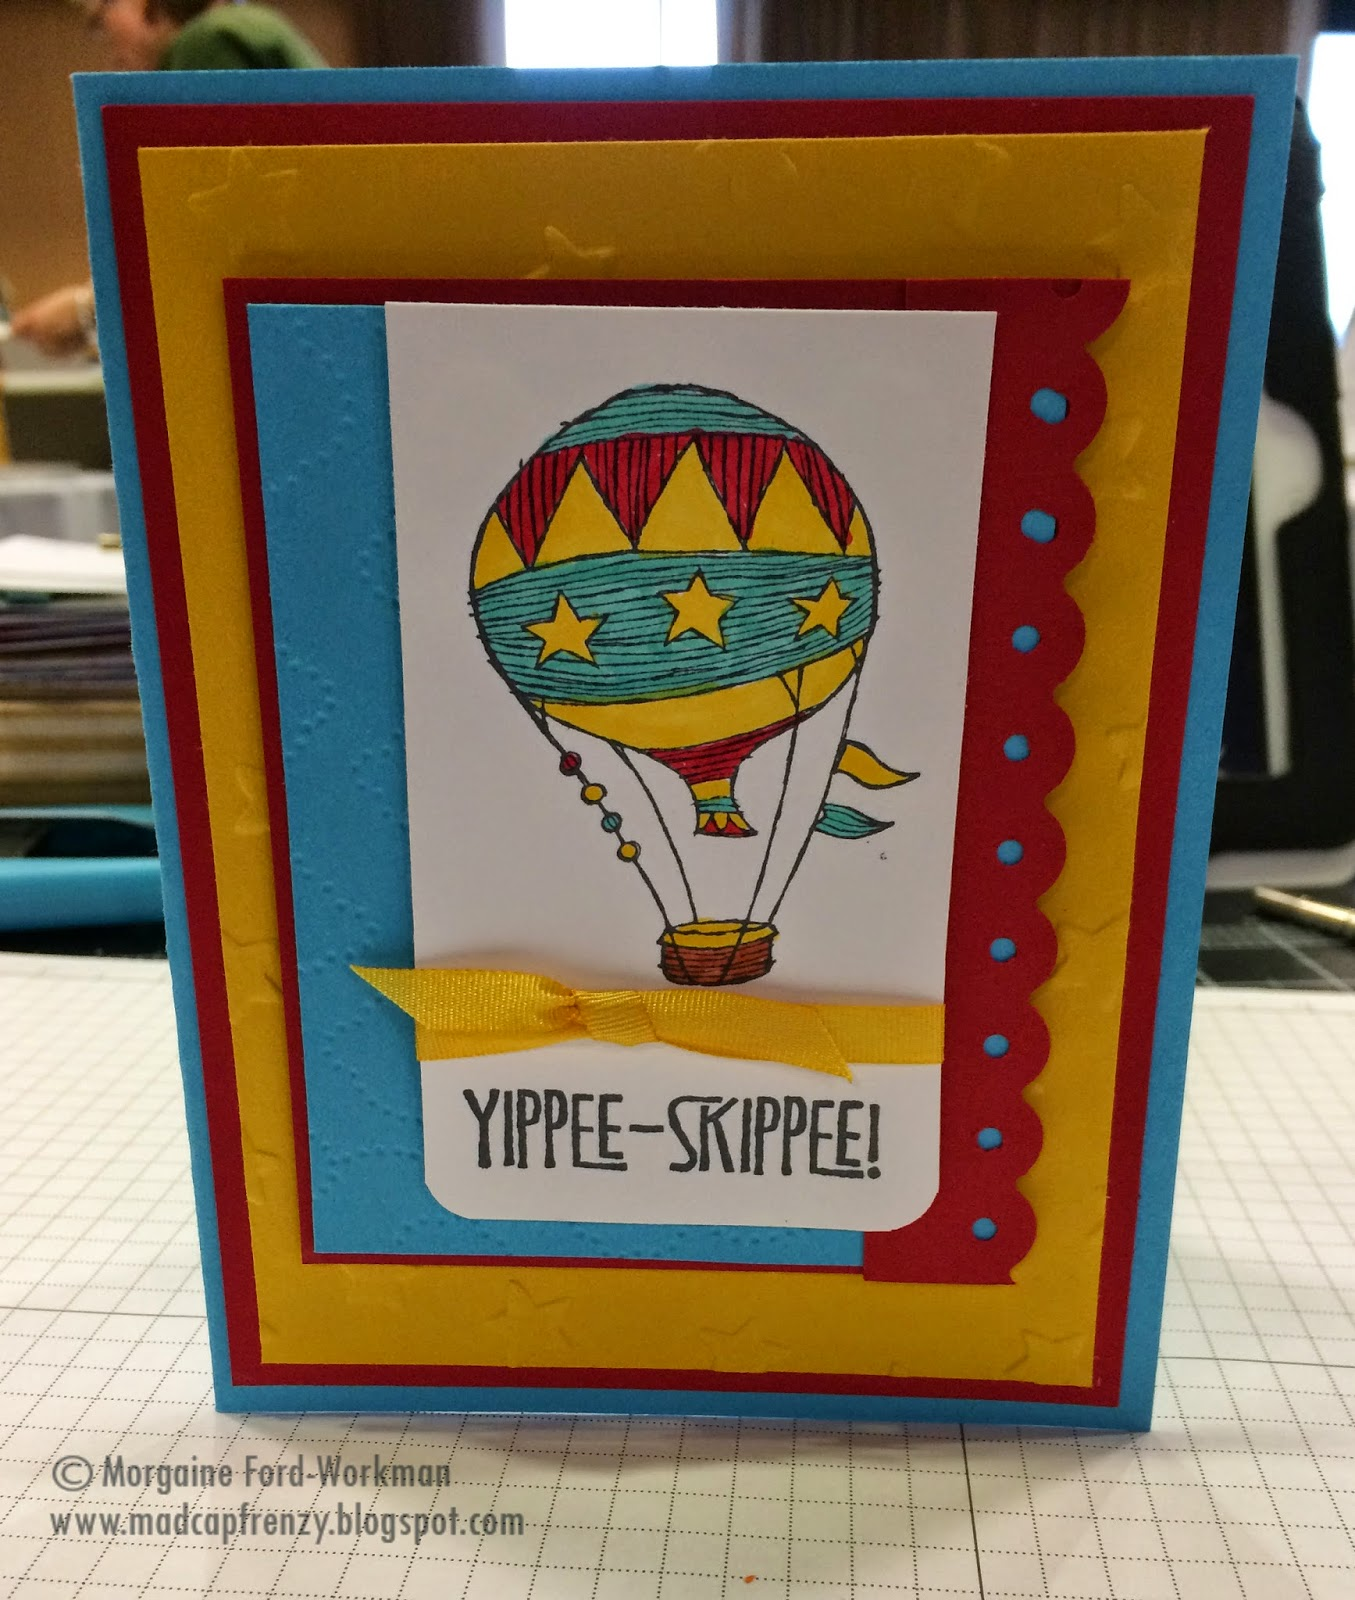 Madcap Frenzy Yippee Skippe hooray retirement card